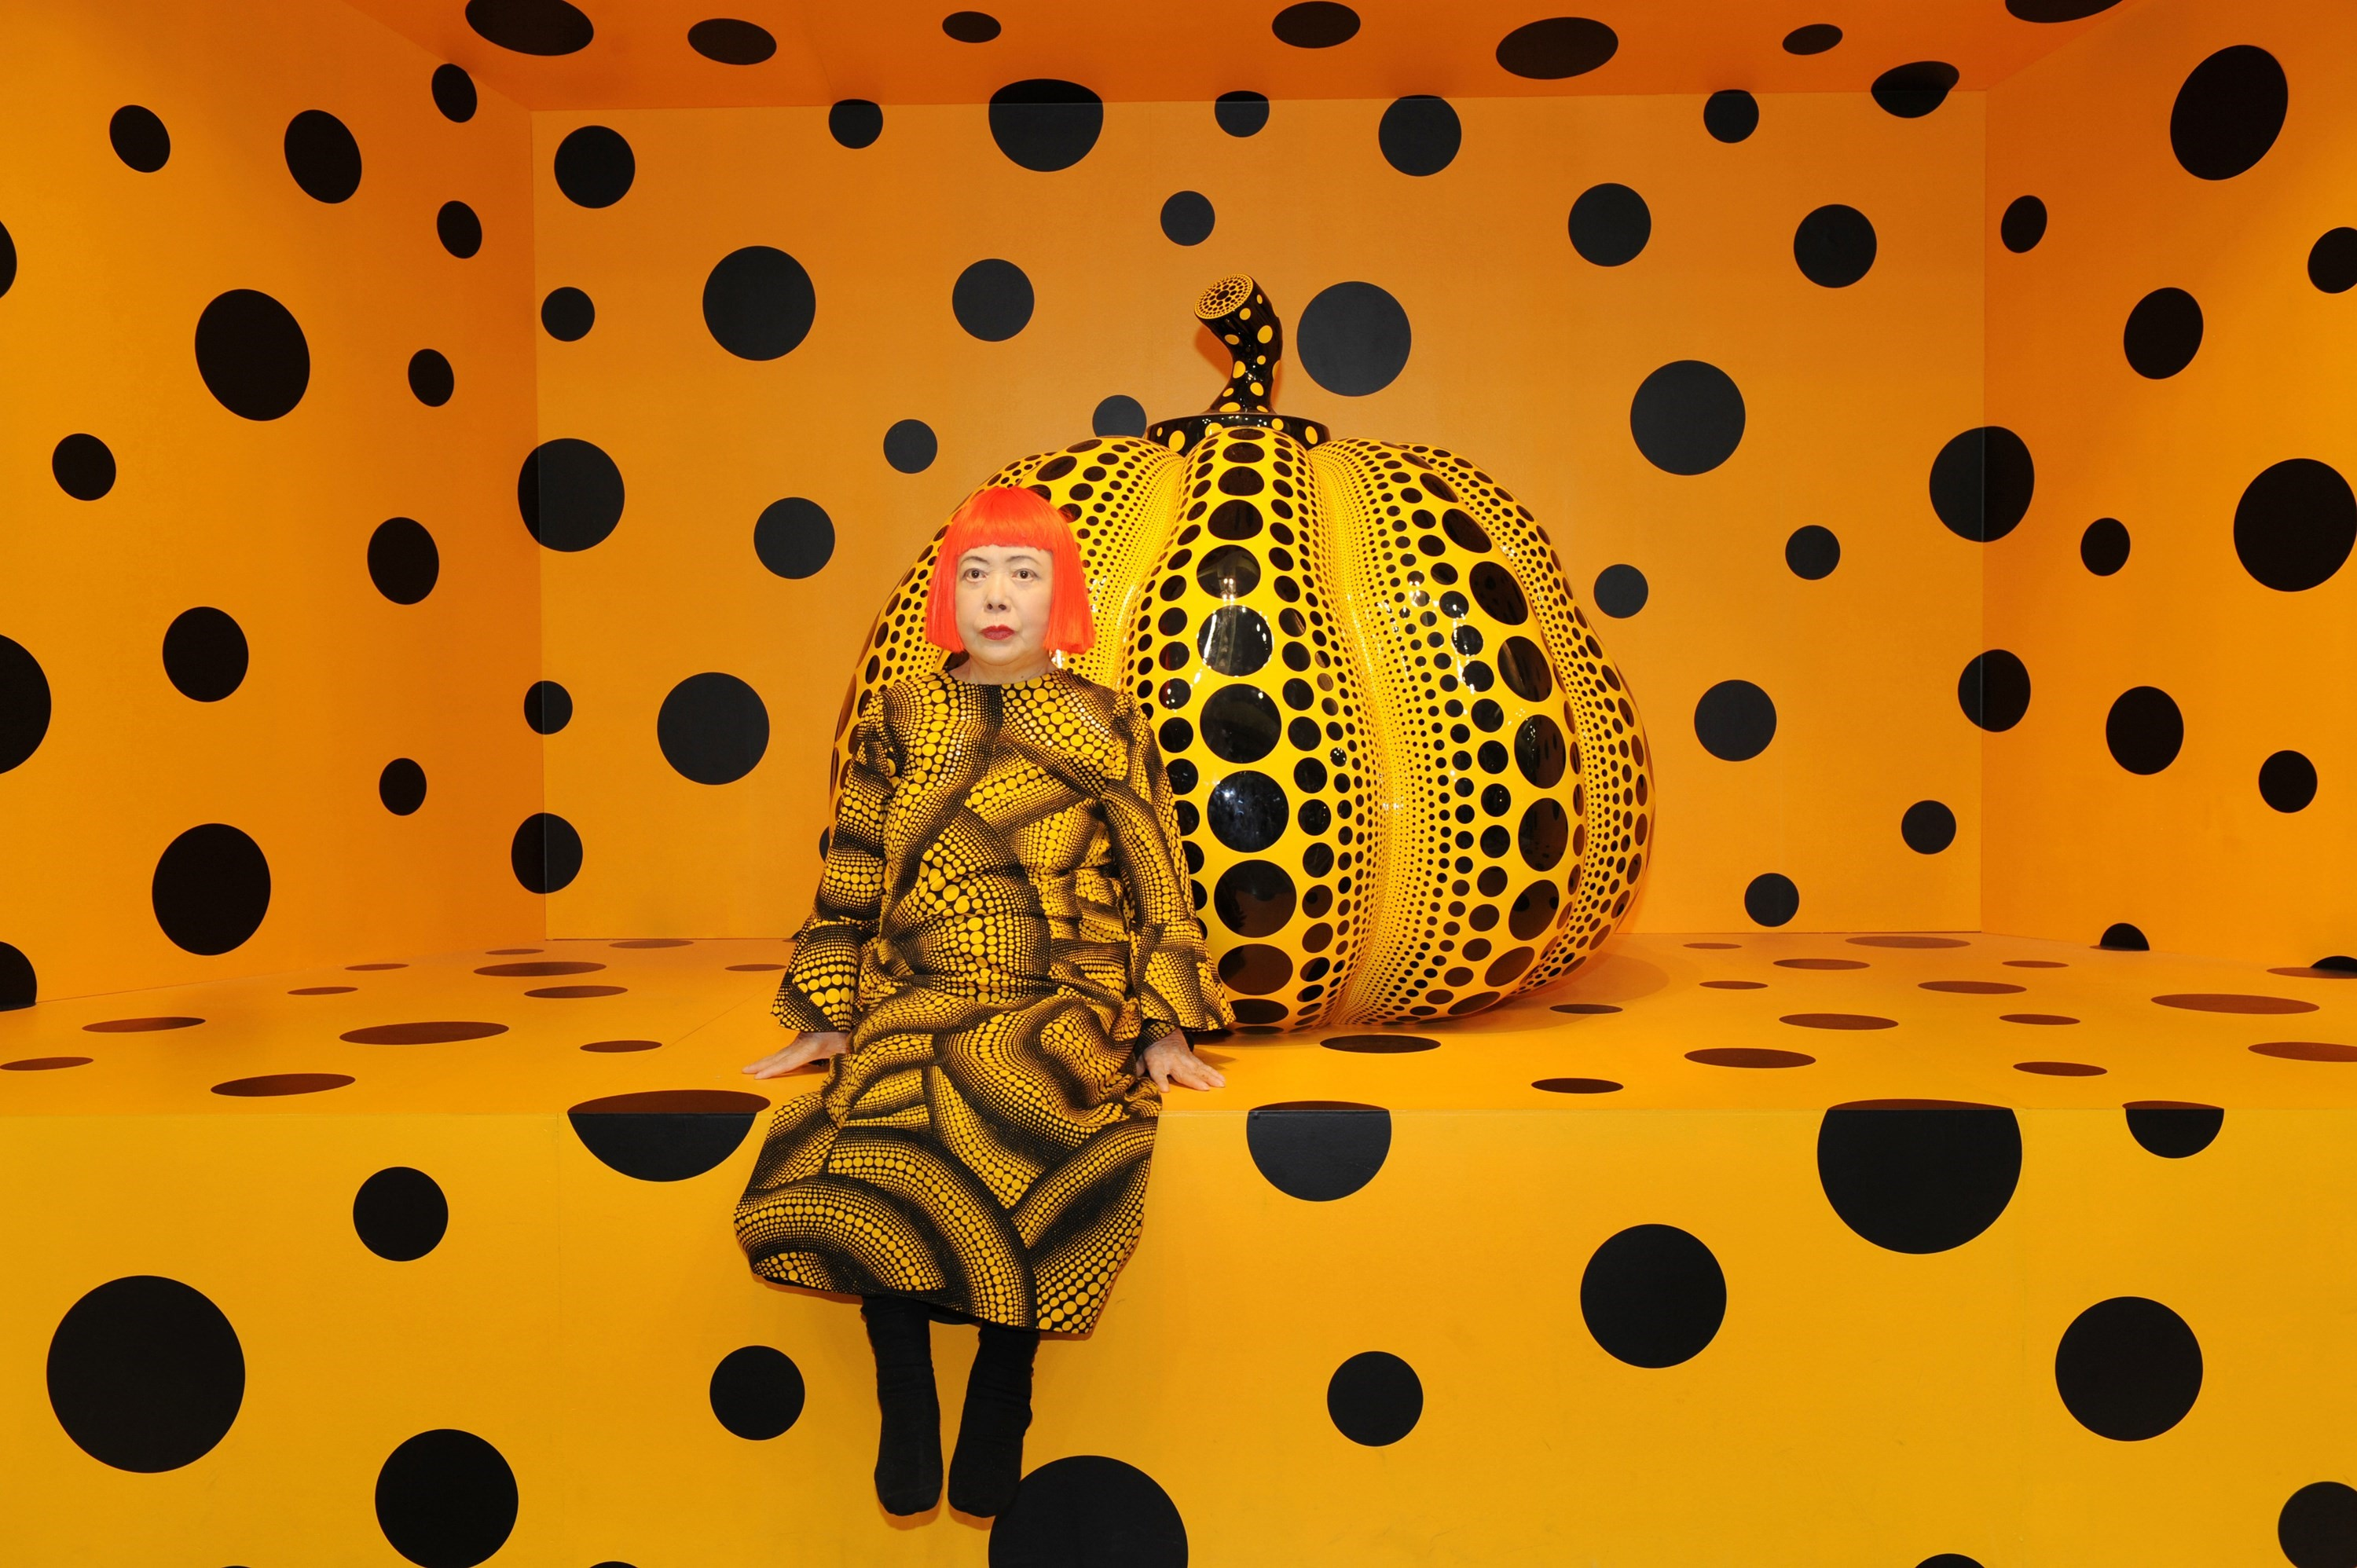 Yayoi Kusama Is Creating Her First Ever Participatory Art Installation Dazed